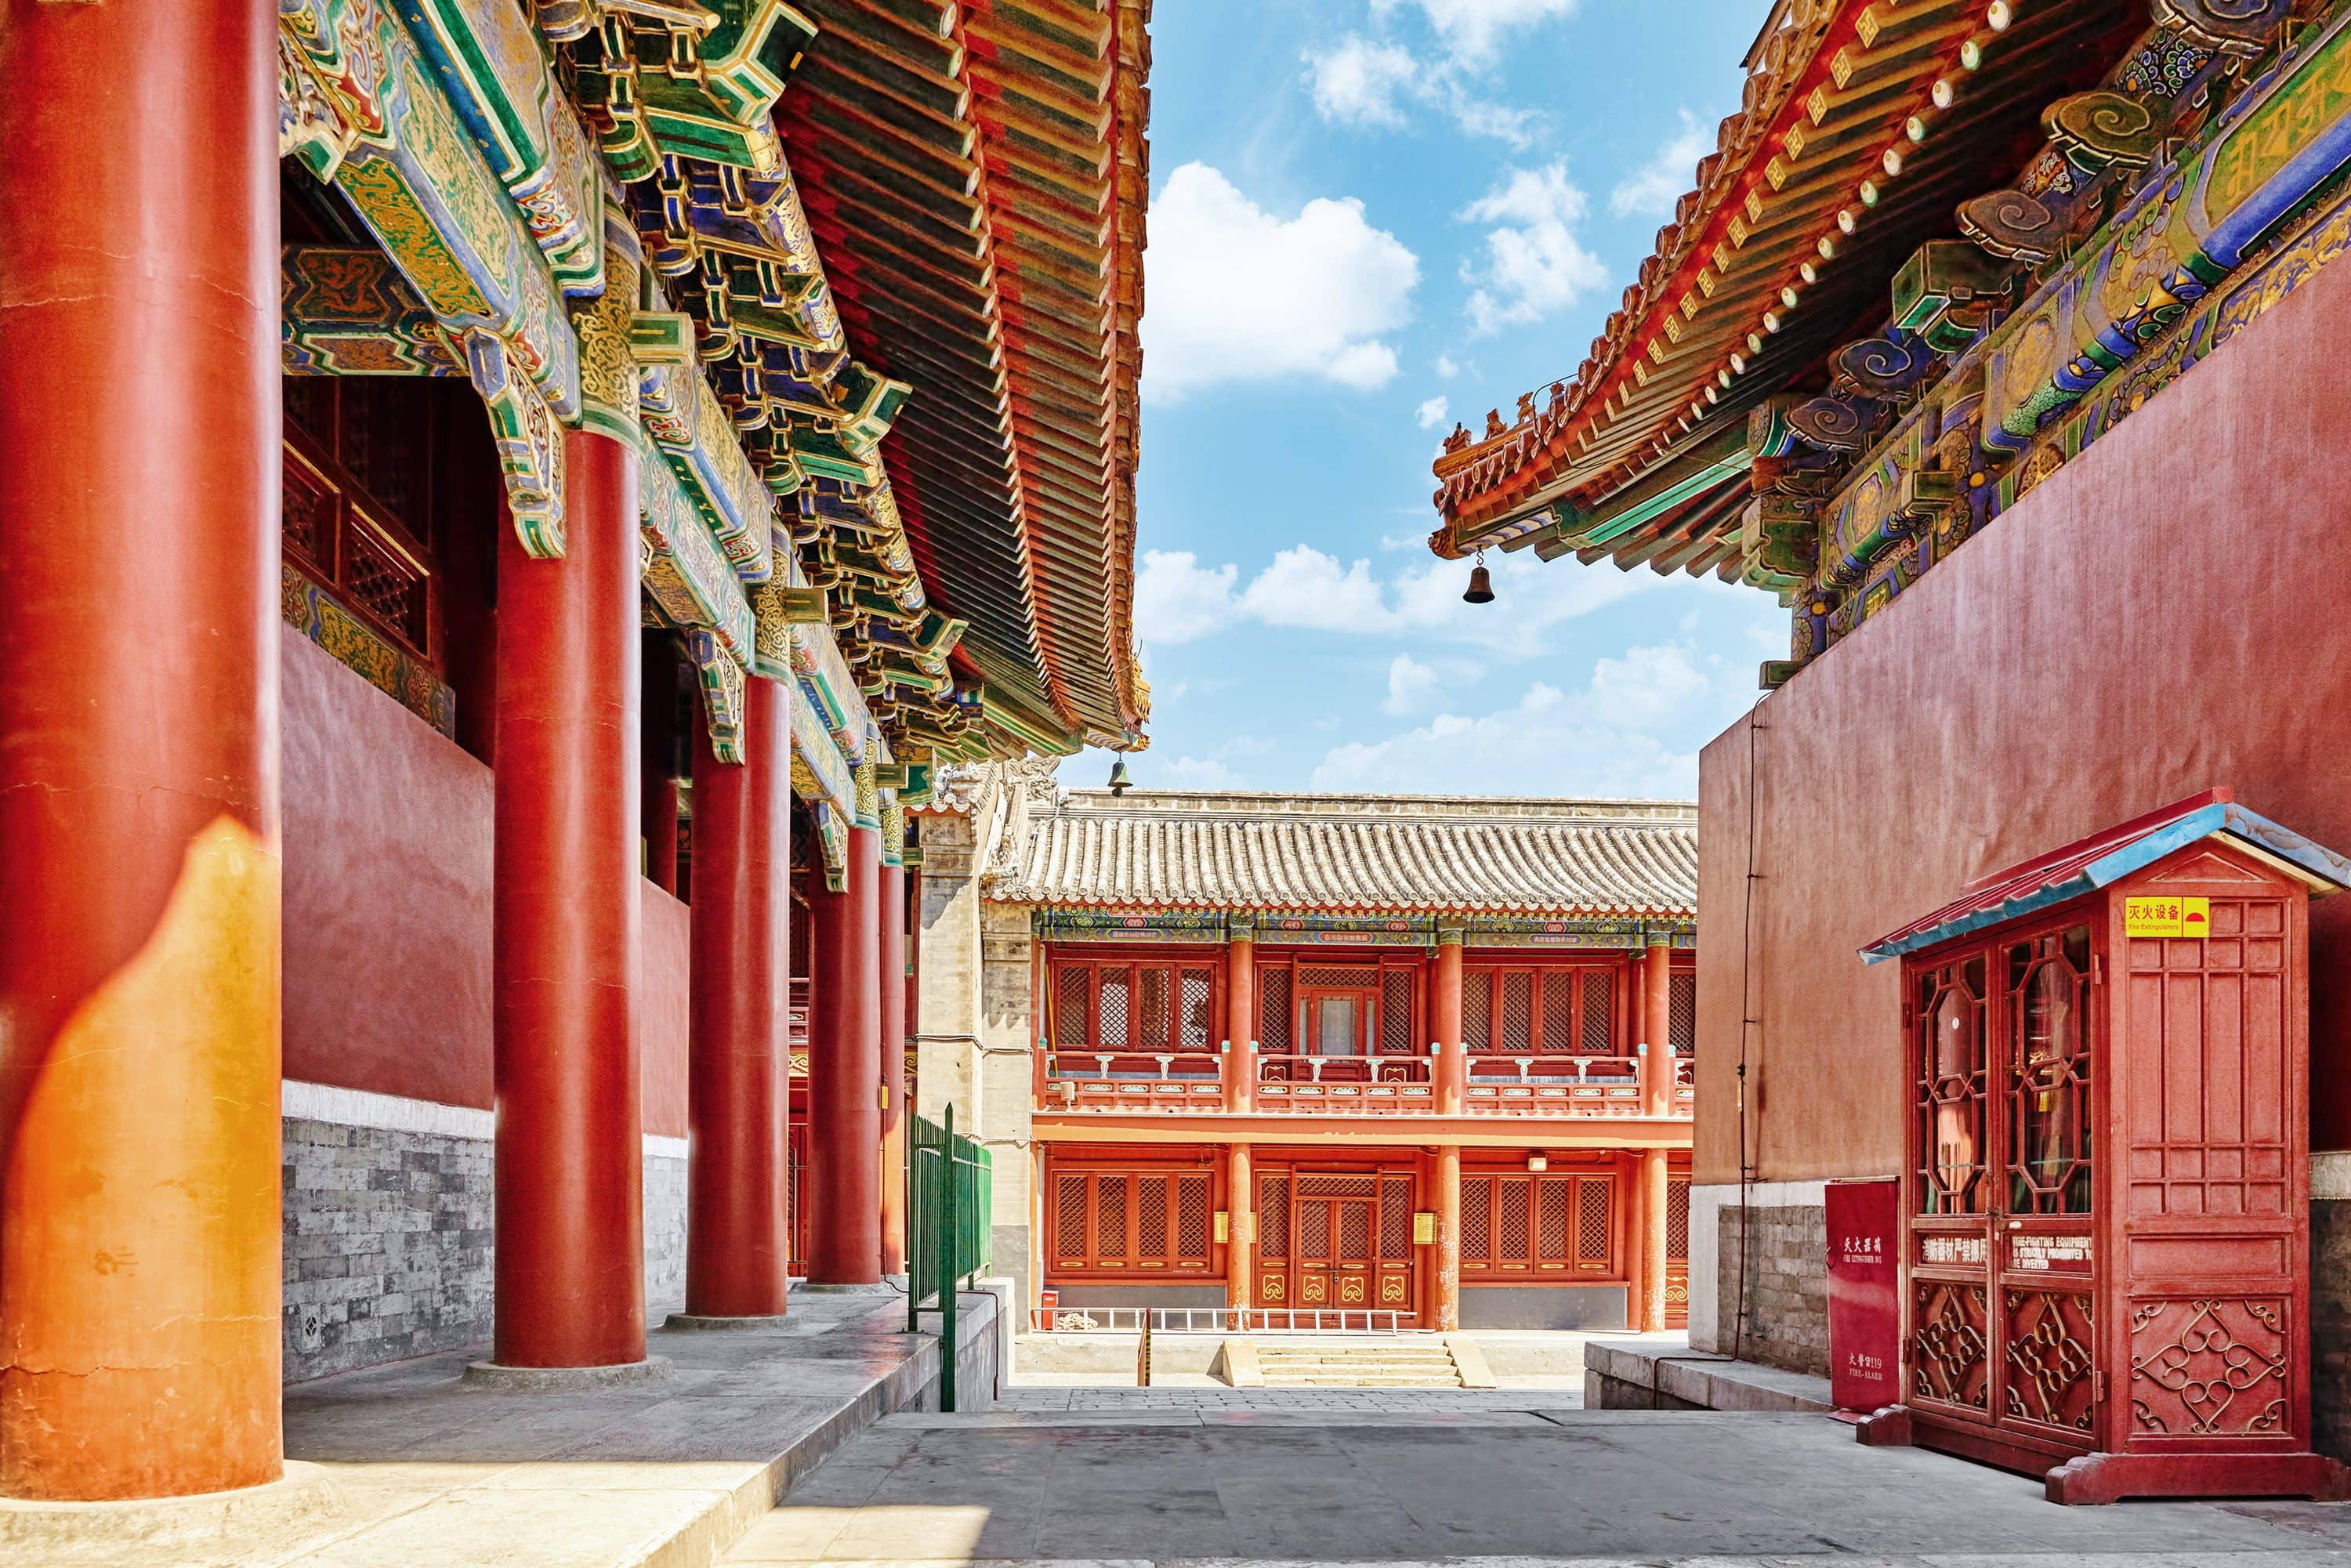 Architecture at the Lama Temple, Beijing